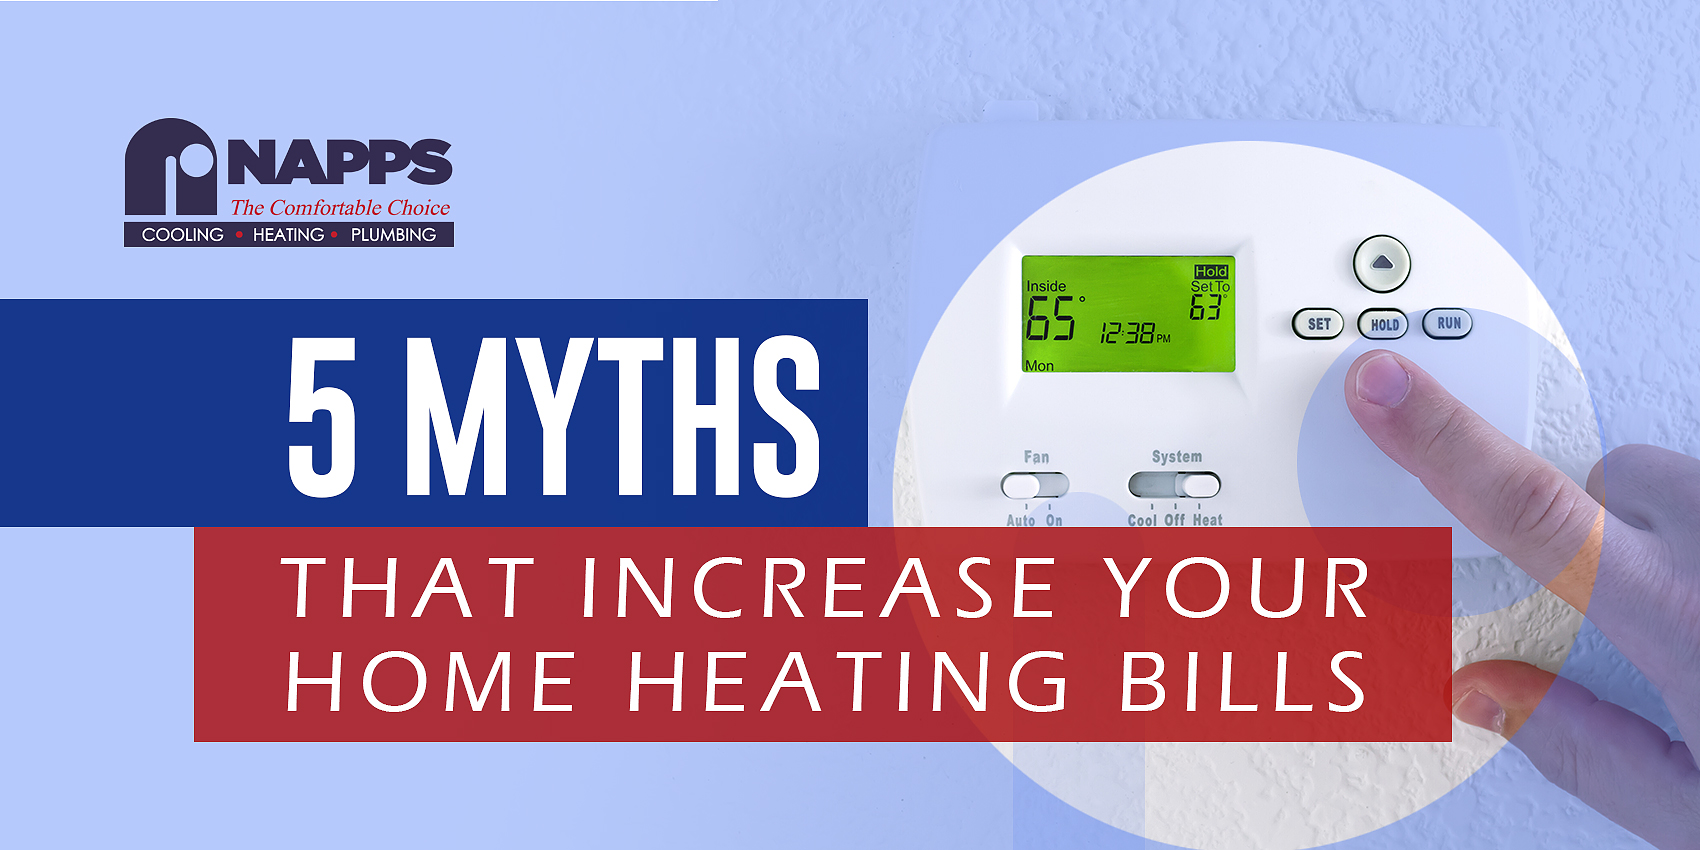 5 Myths That Increase Your Home Heating Bills